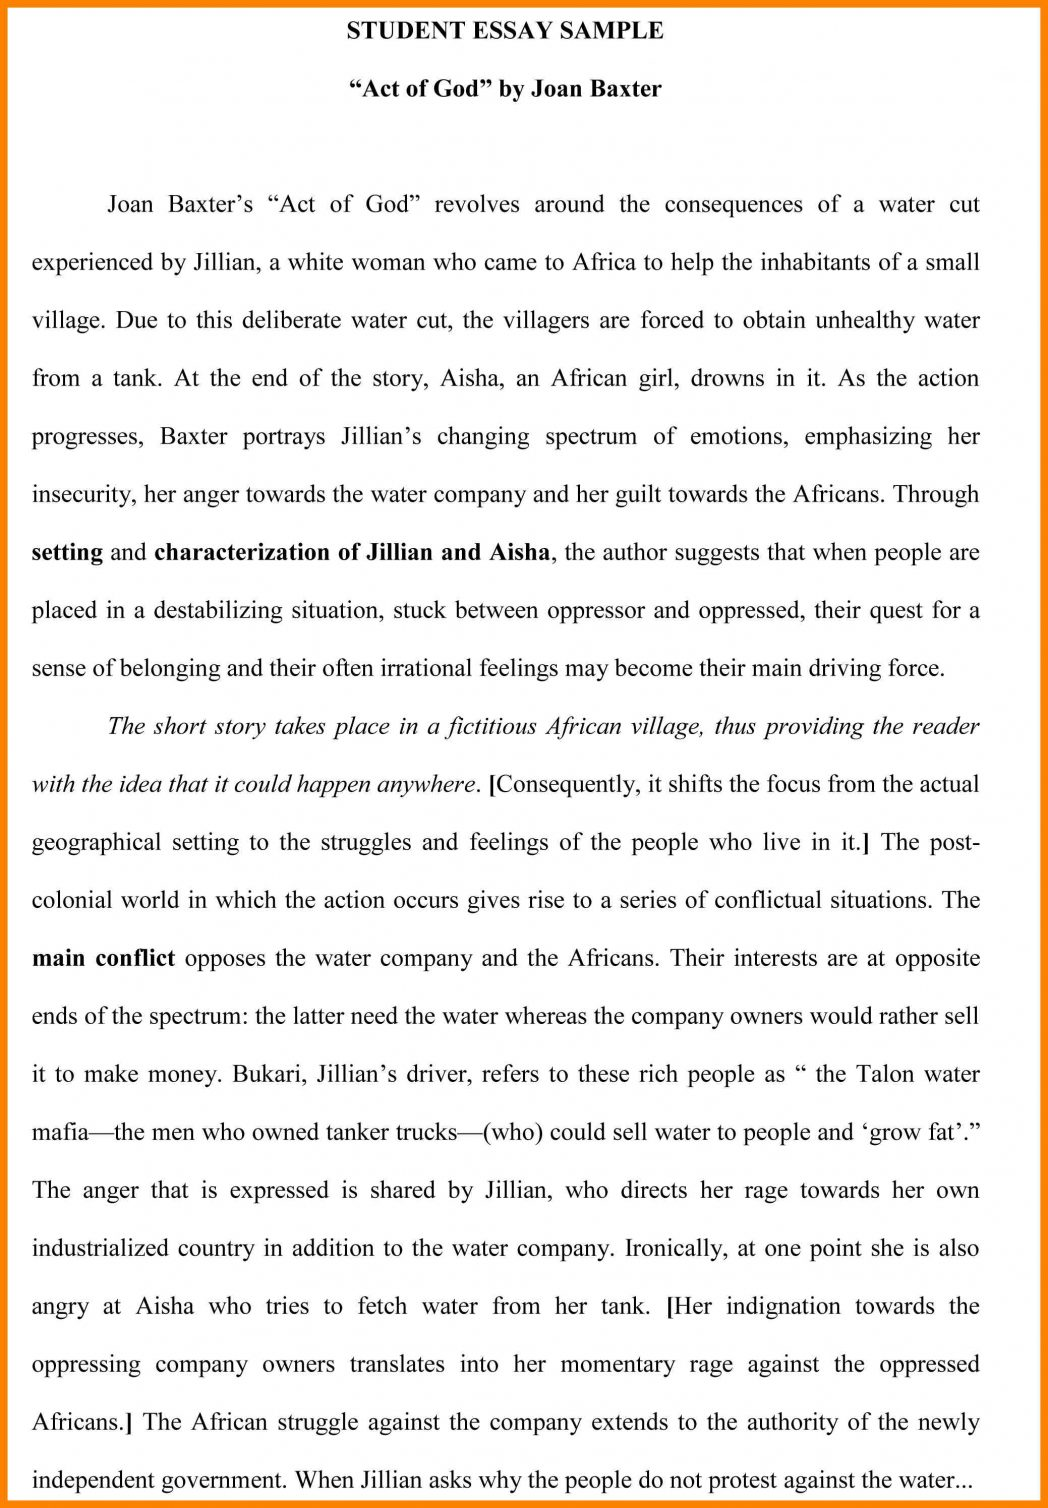 003 Examples Of Process Essays Pdf How To Write Good Student Better Download Descriptive Great Law Steve Foster Lauren Starkey 1048x1508 Essay Ideas Marvelous Funny Analysis Full